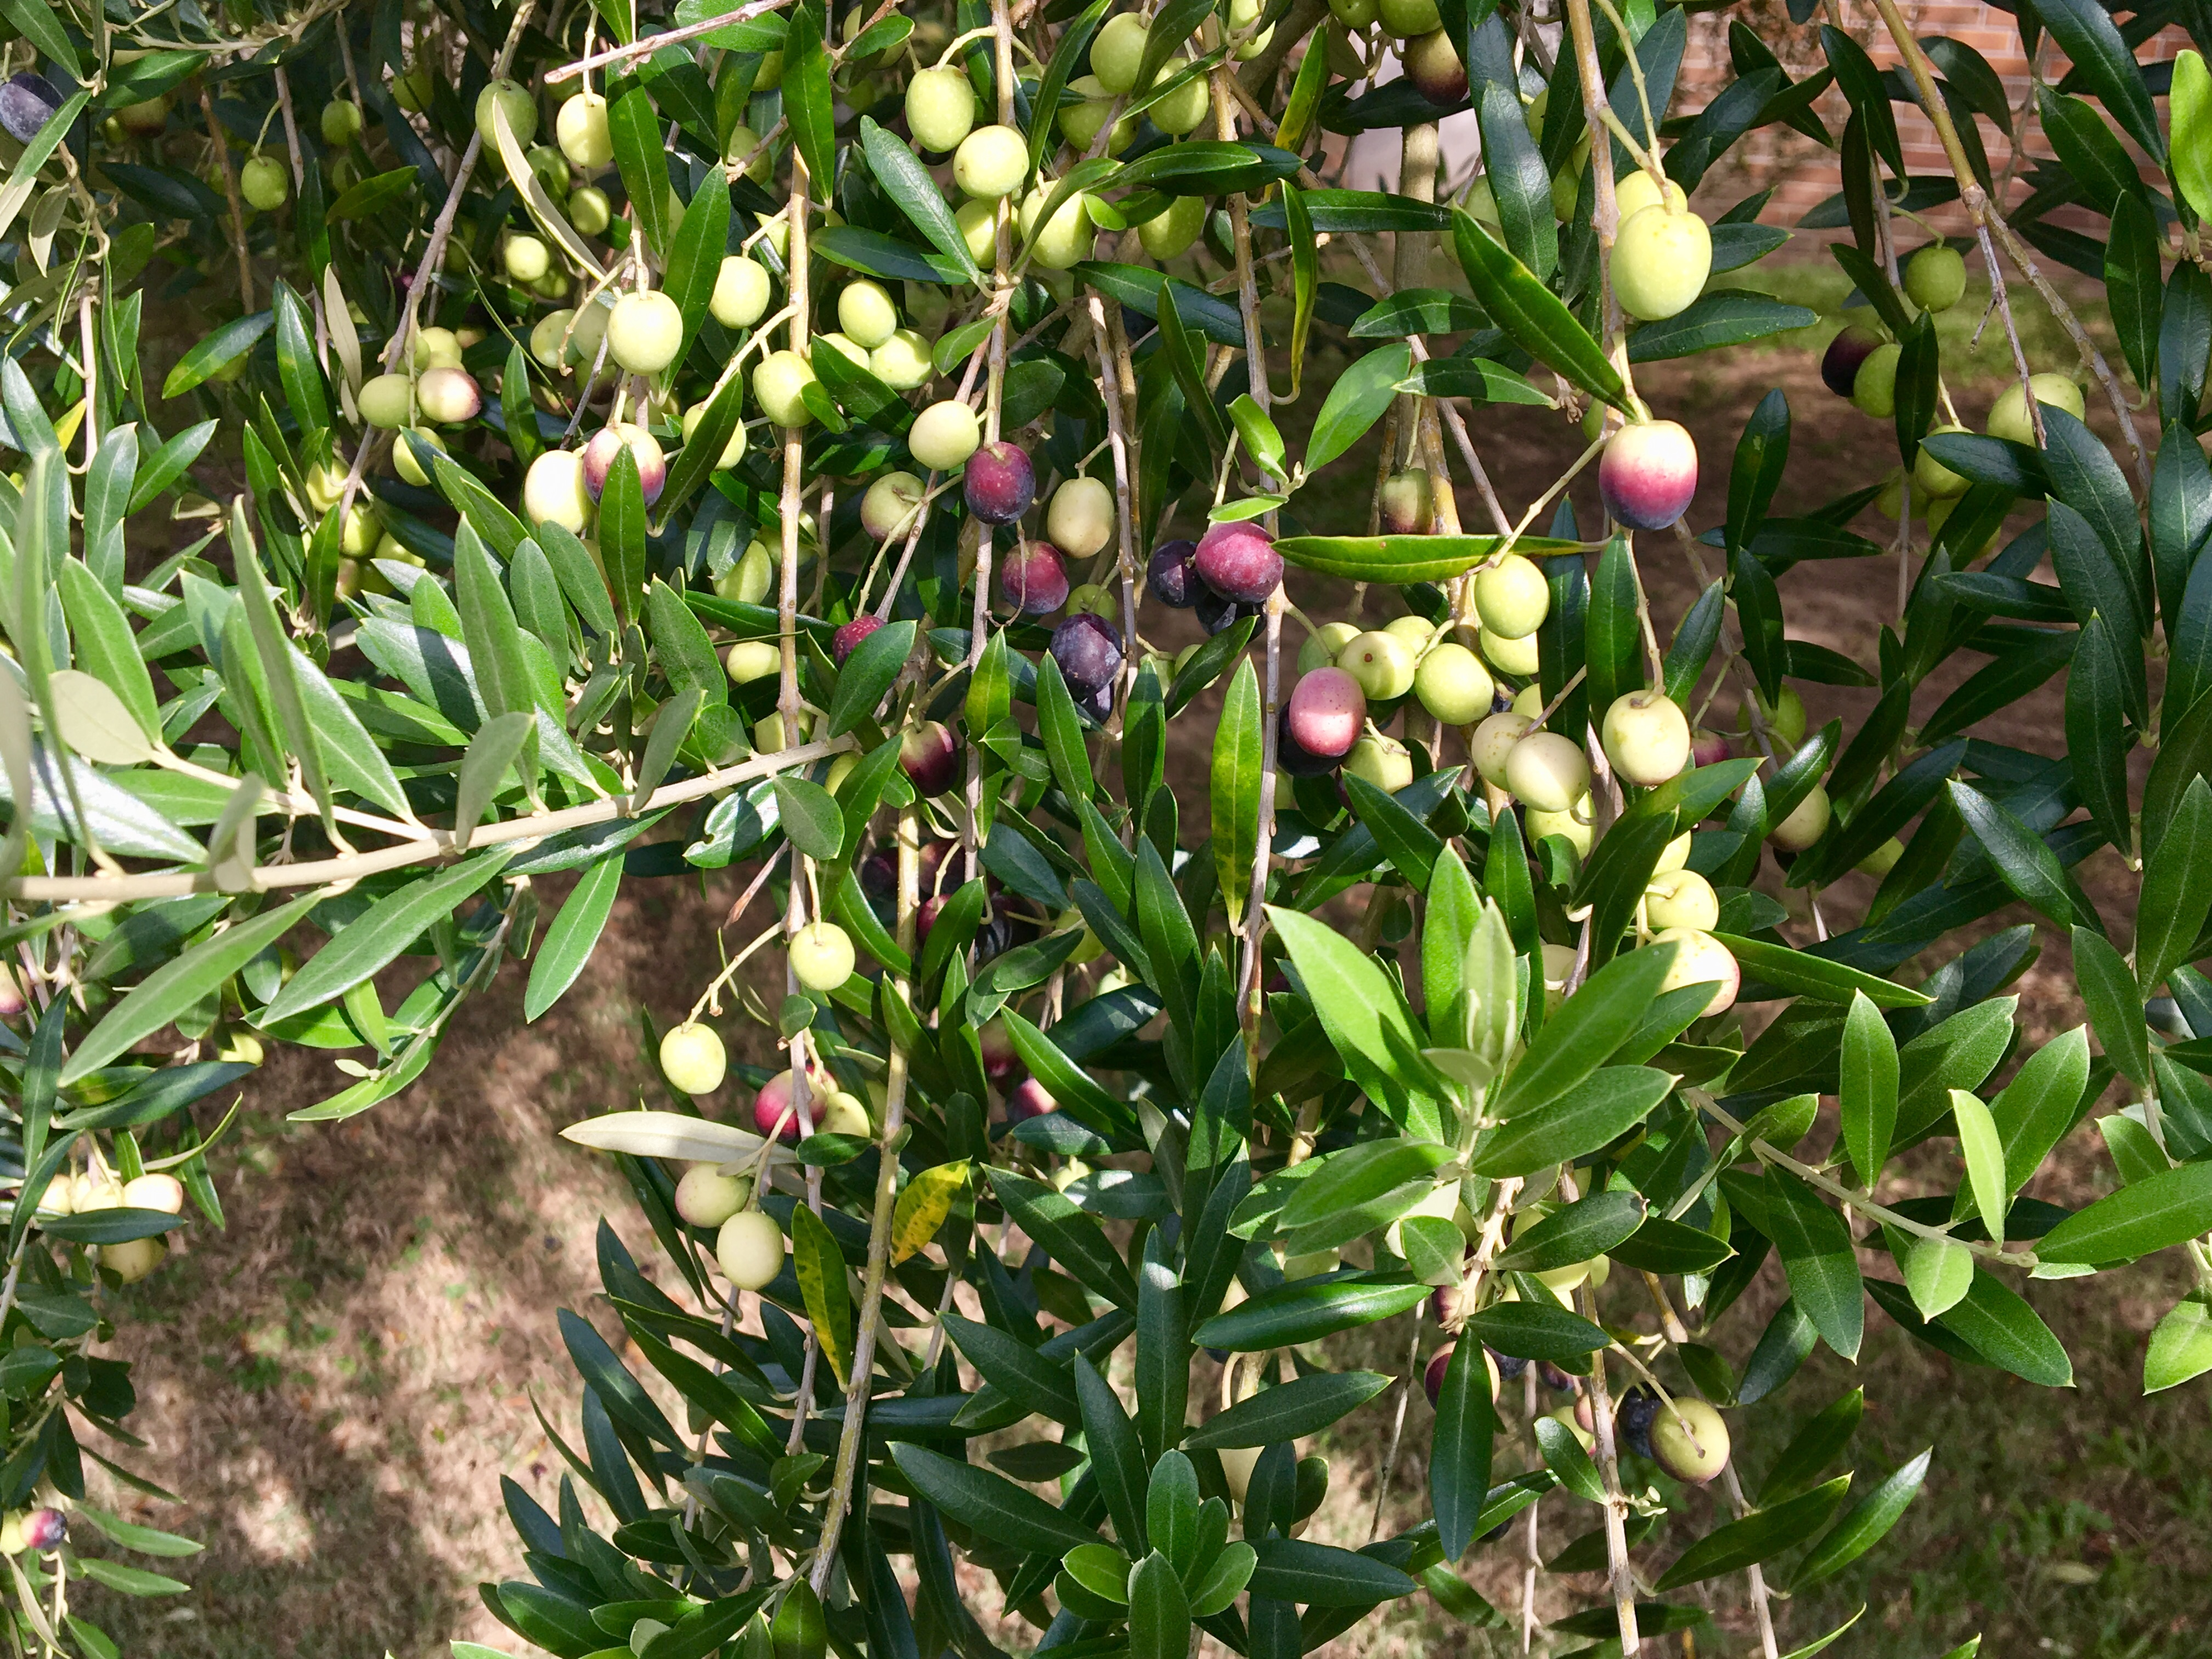 olive fruit and leaves.JPG thumbnail